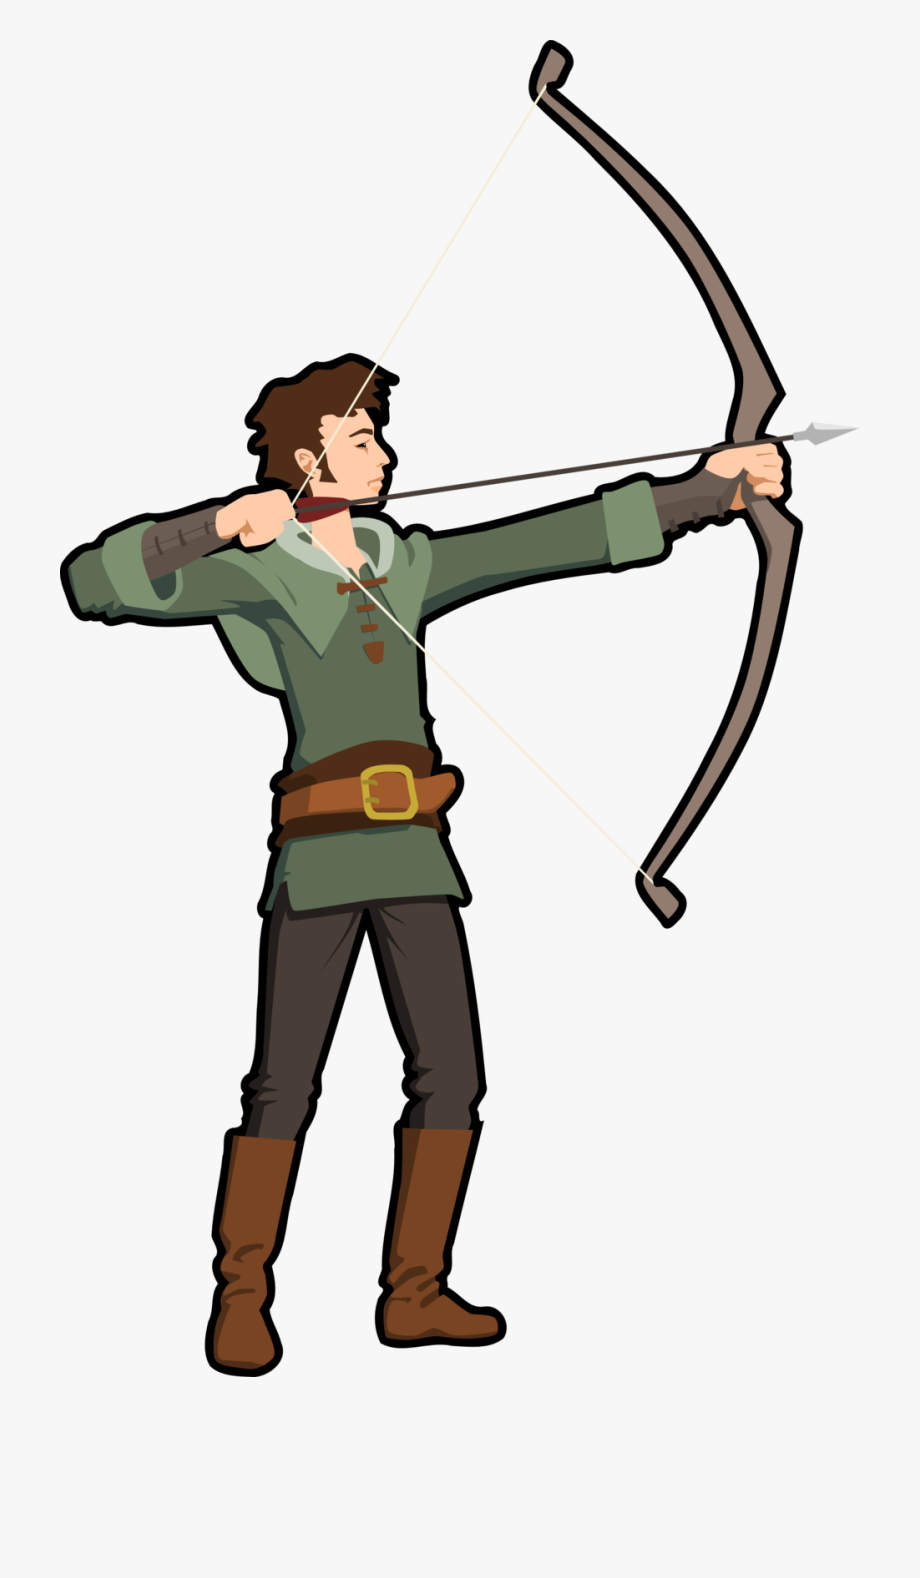 Archery hunting clipart royalty free Png Image - Cartoon Hunter With Bow And Arrow #319144 - Free ... royalty free